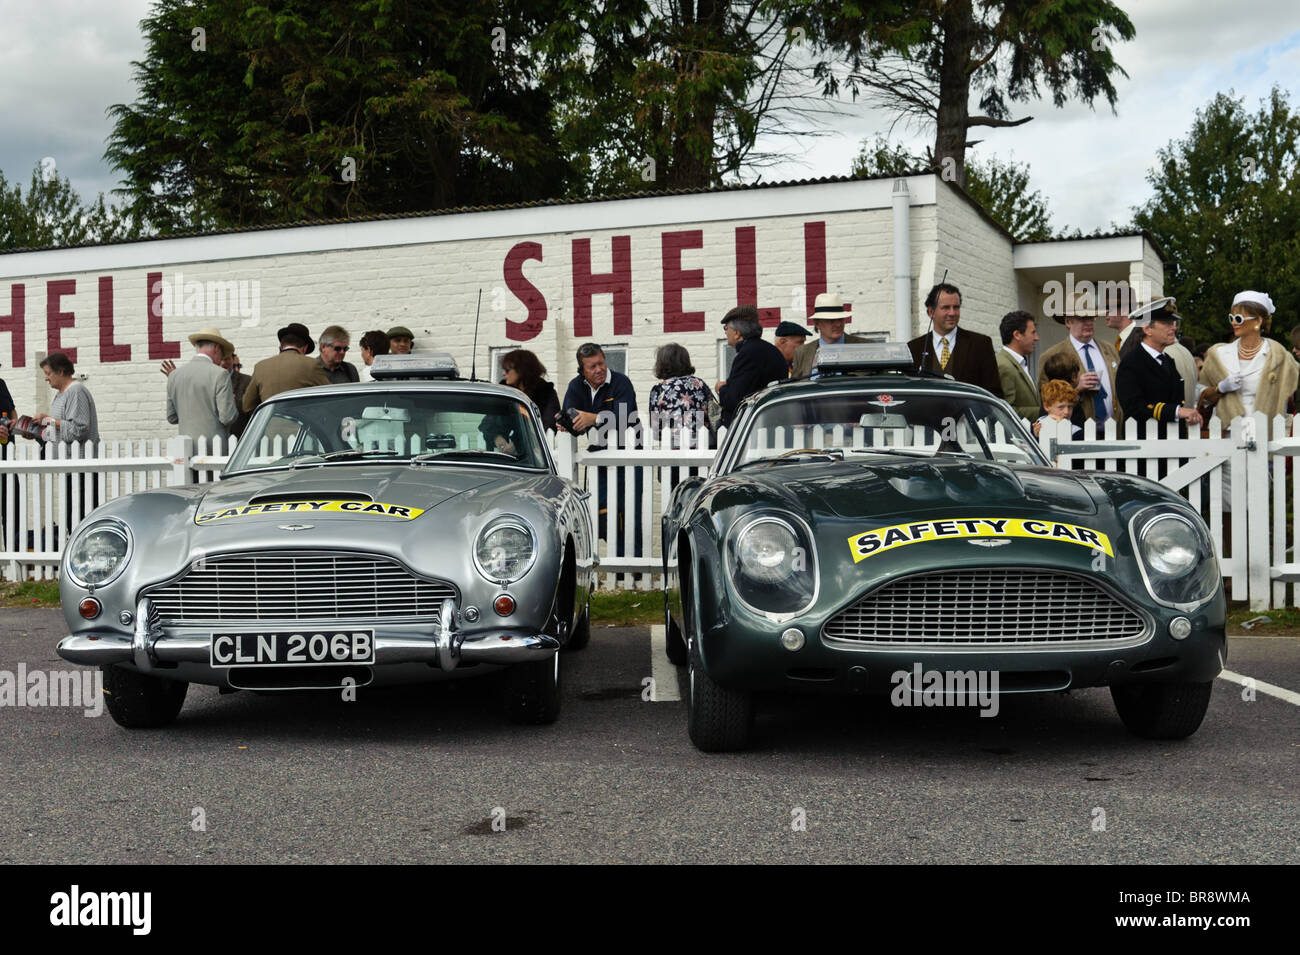 Aston Martin Safety Cars beim Goodwood Revival 2010, West Sussex 19. September 2010. Bild von Julie Edwards Stockbild